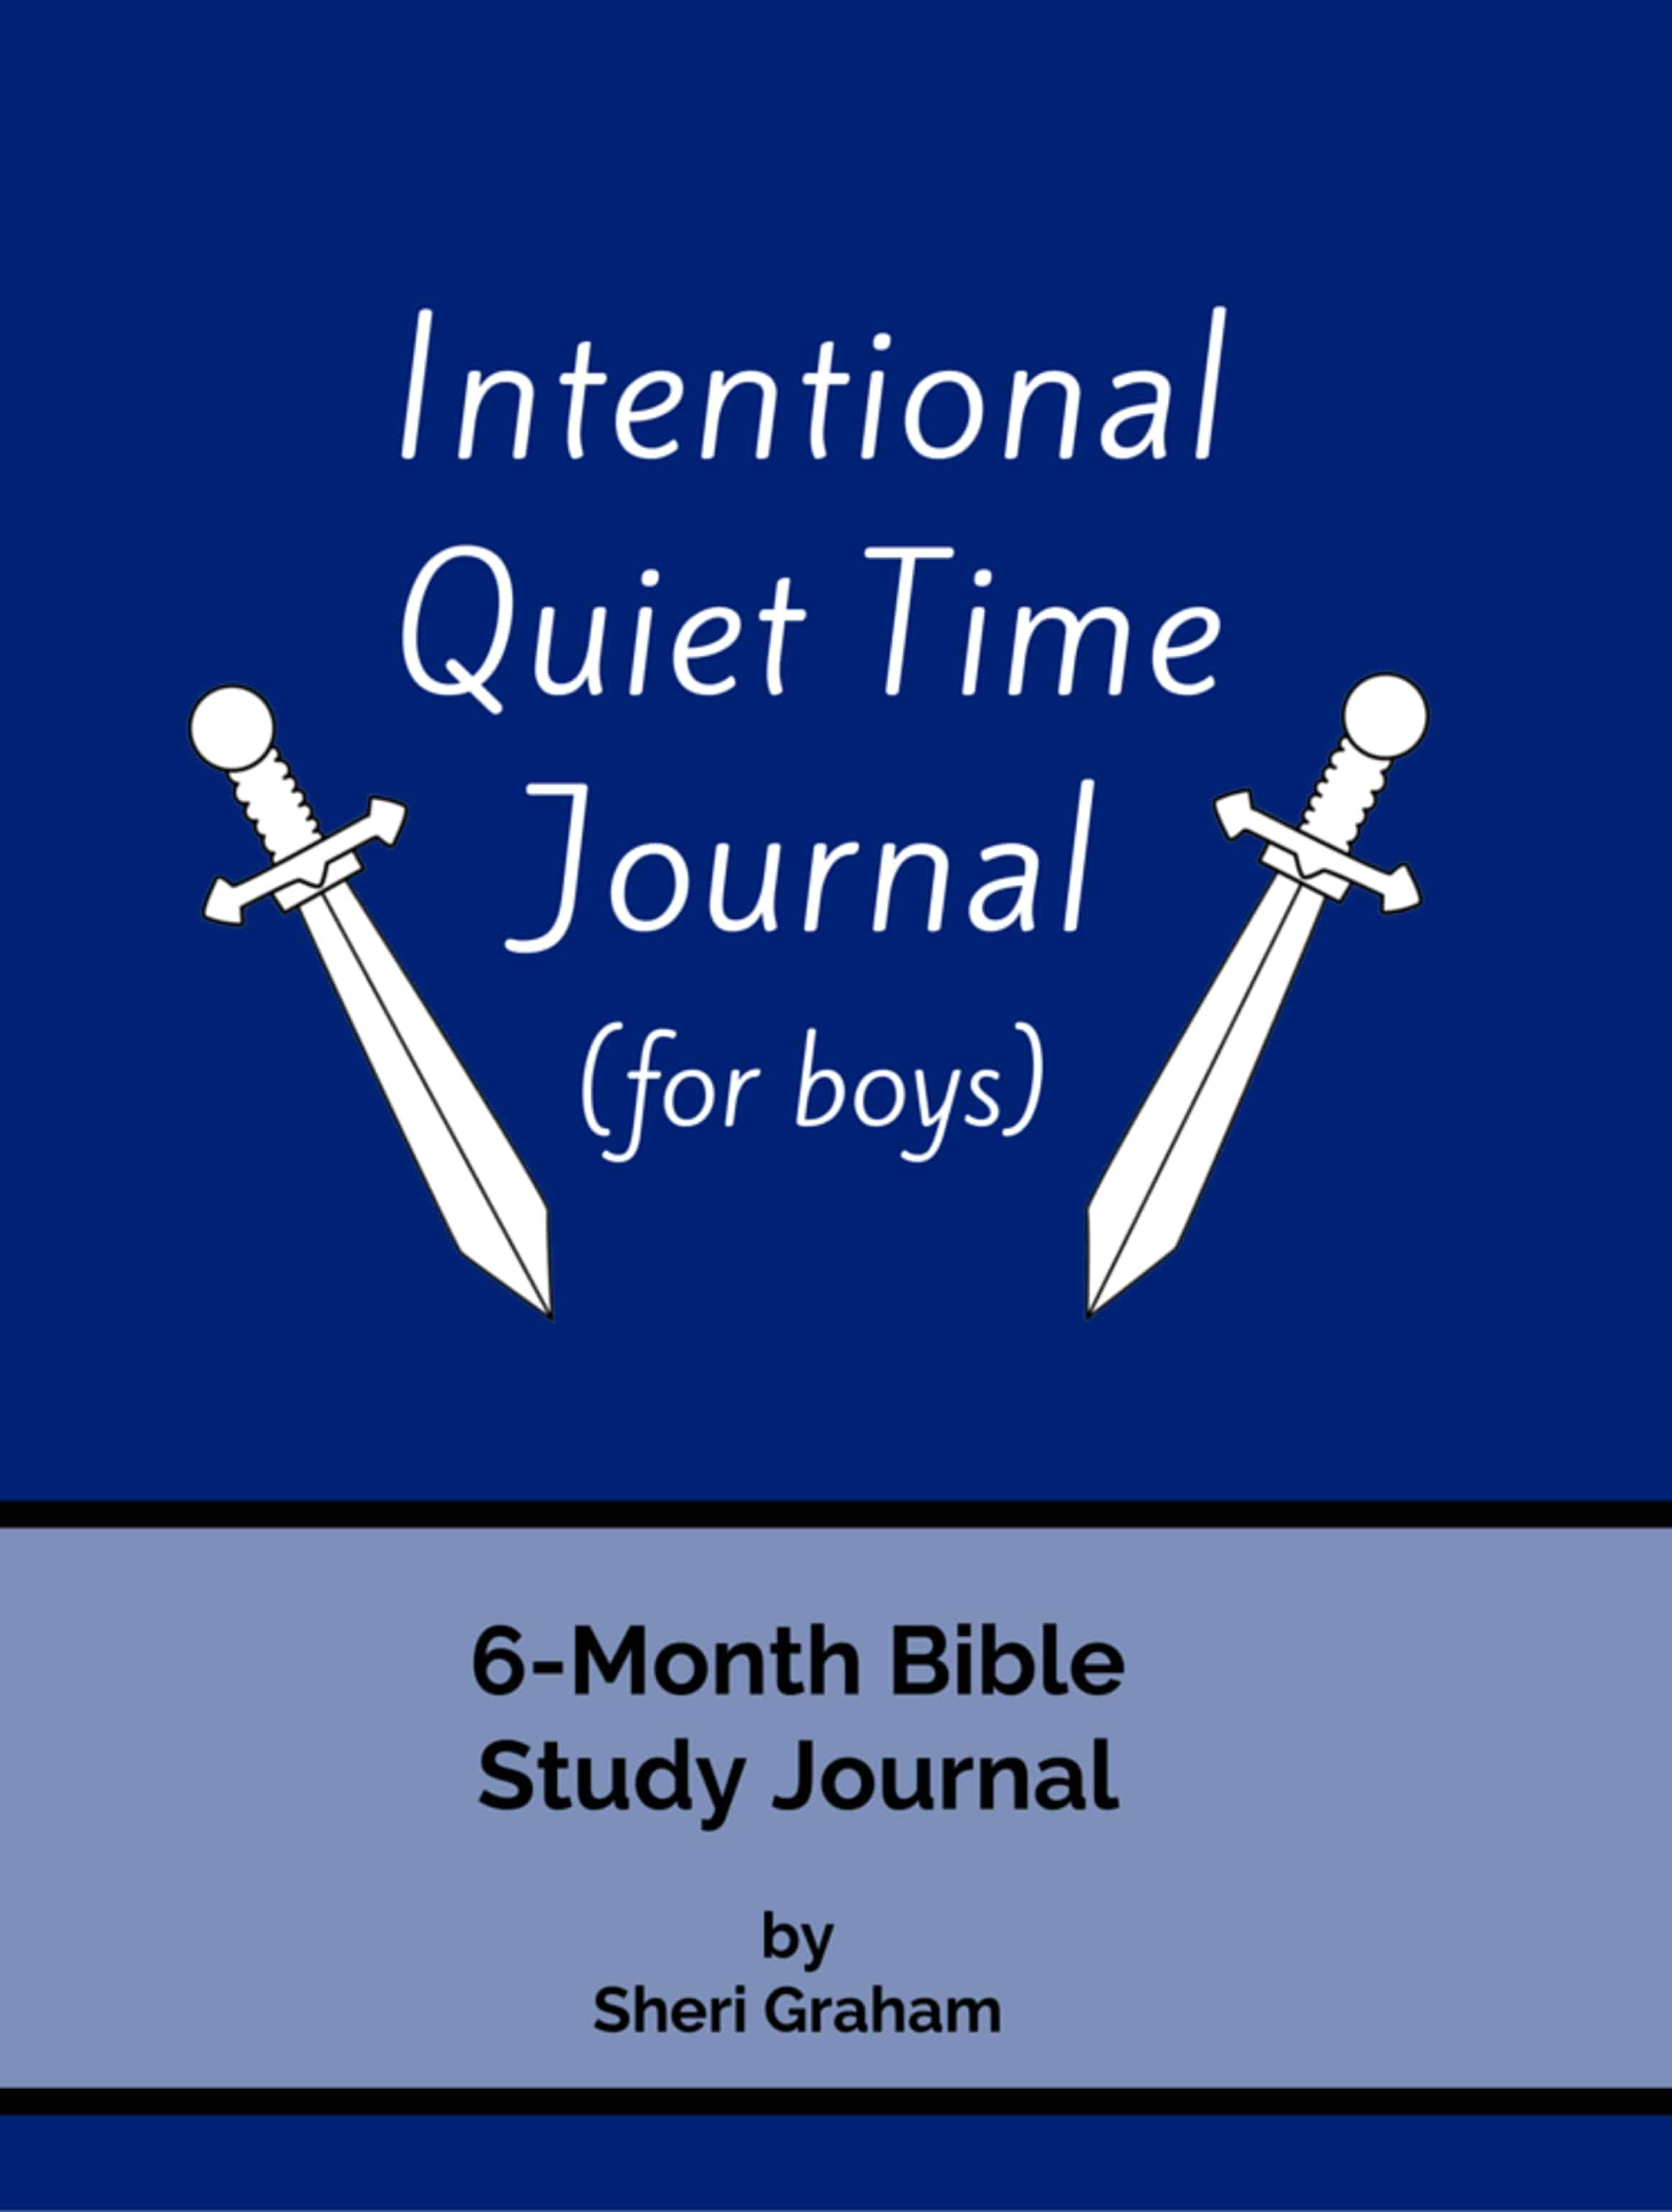 Intentional Quiet Time Journal (for boys): 6-Month Bible Study Journal (Softcover)